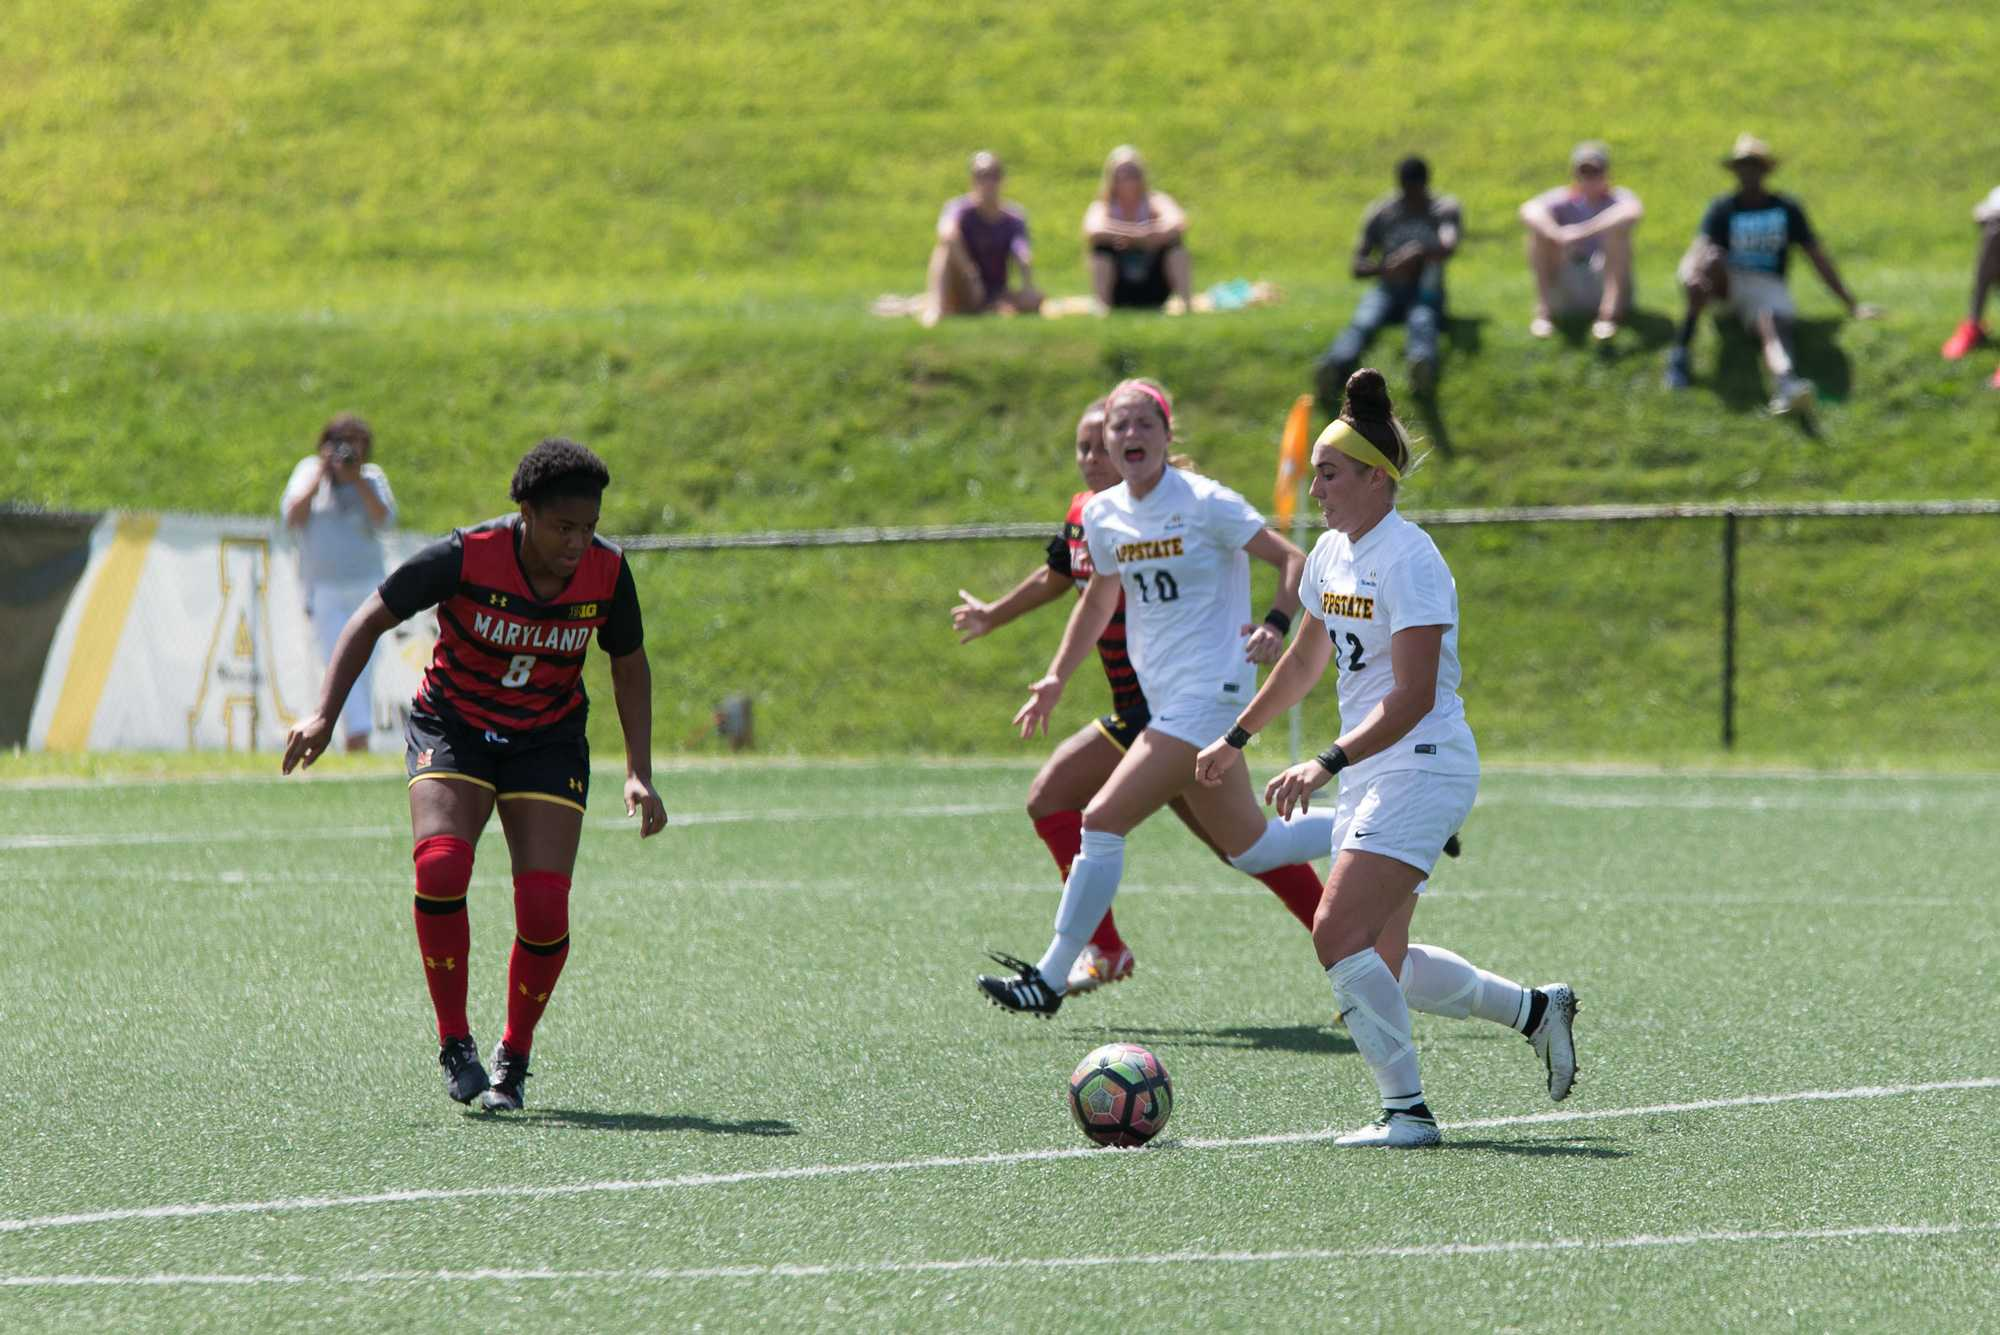 Redshirt sophomore Erin Settle goes for her successful shot against Maryland. Settle scored the first goal for the team in the second half.  Senior forward Jane Cline in the background later scored the winning second goal. Photo by Dallas Linger, Photo Editor